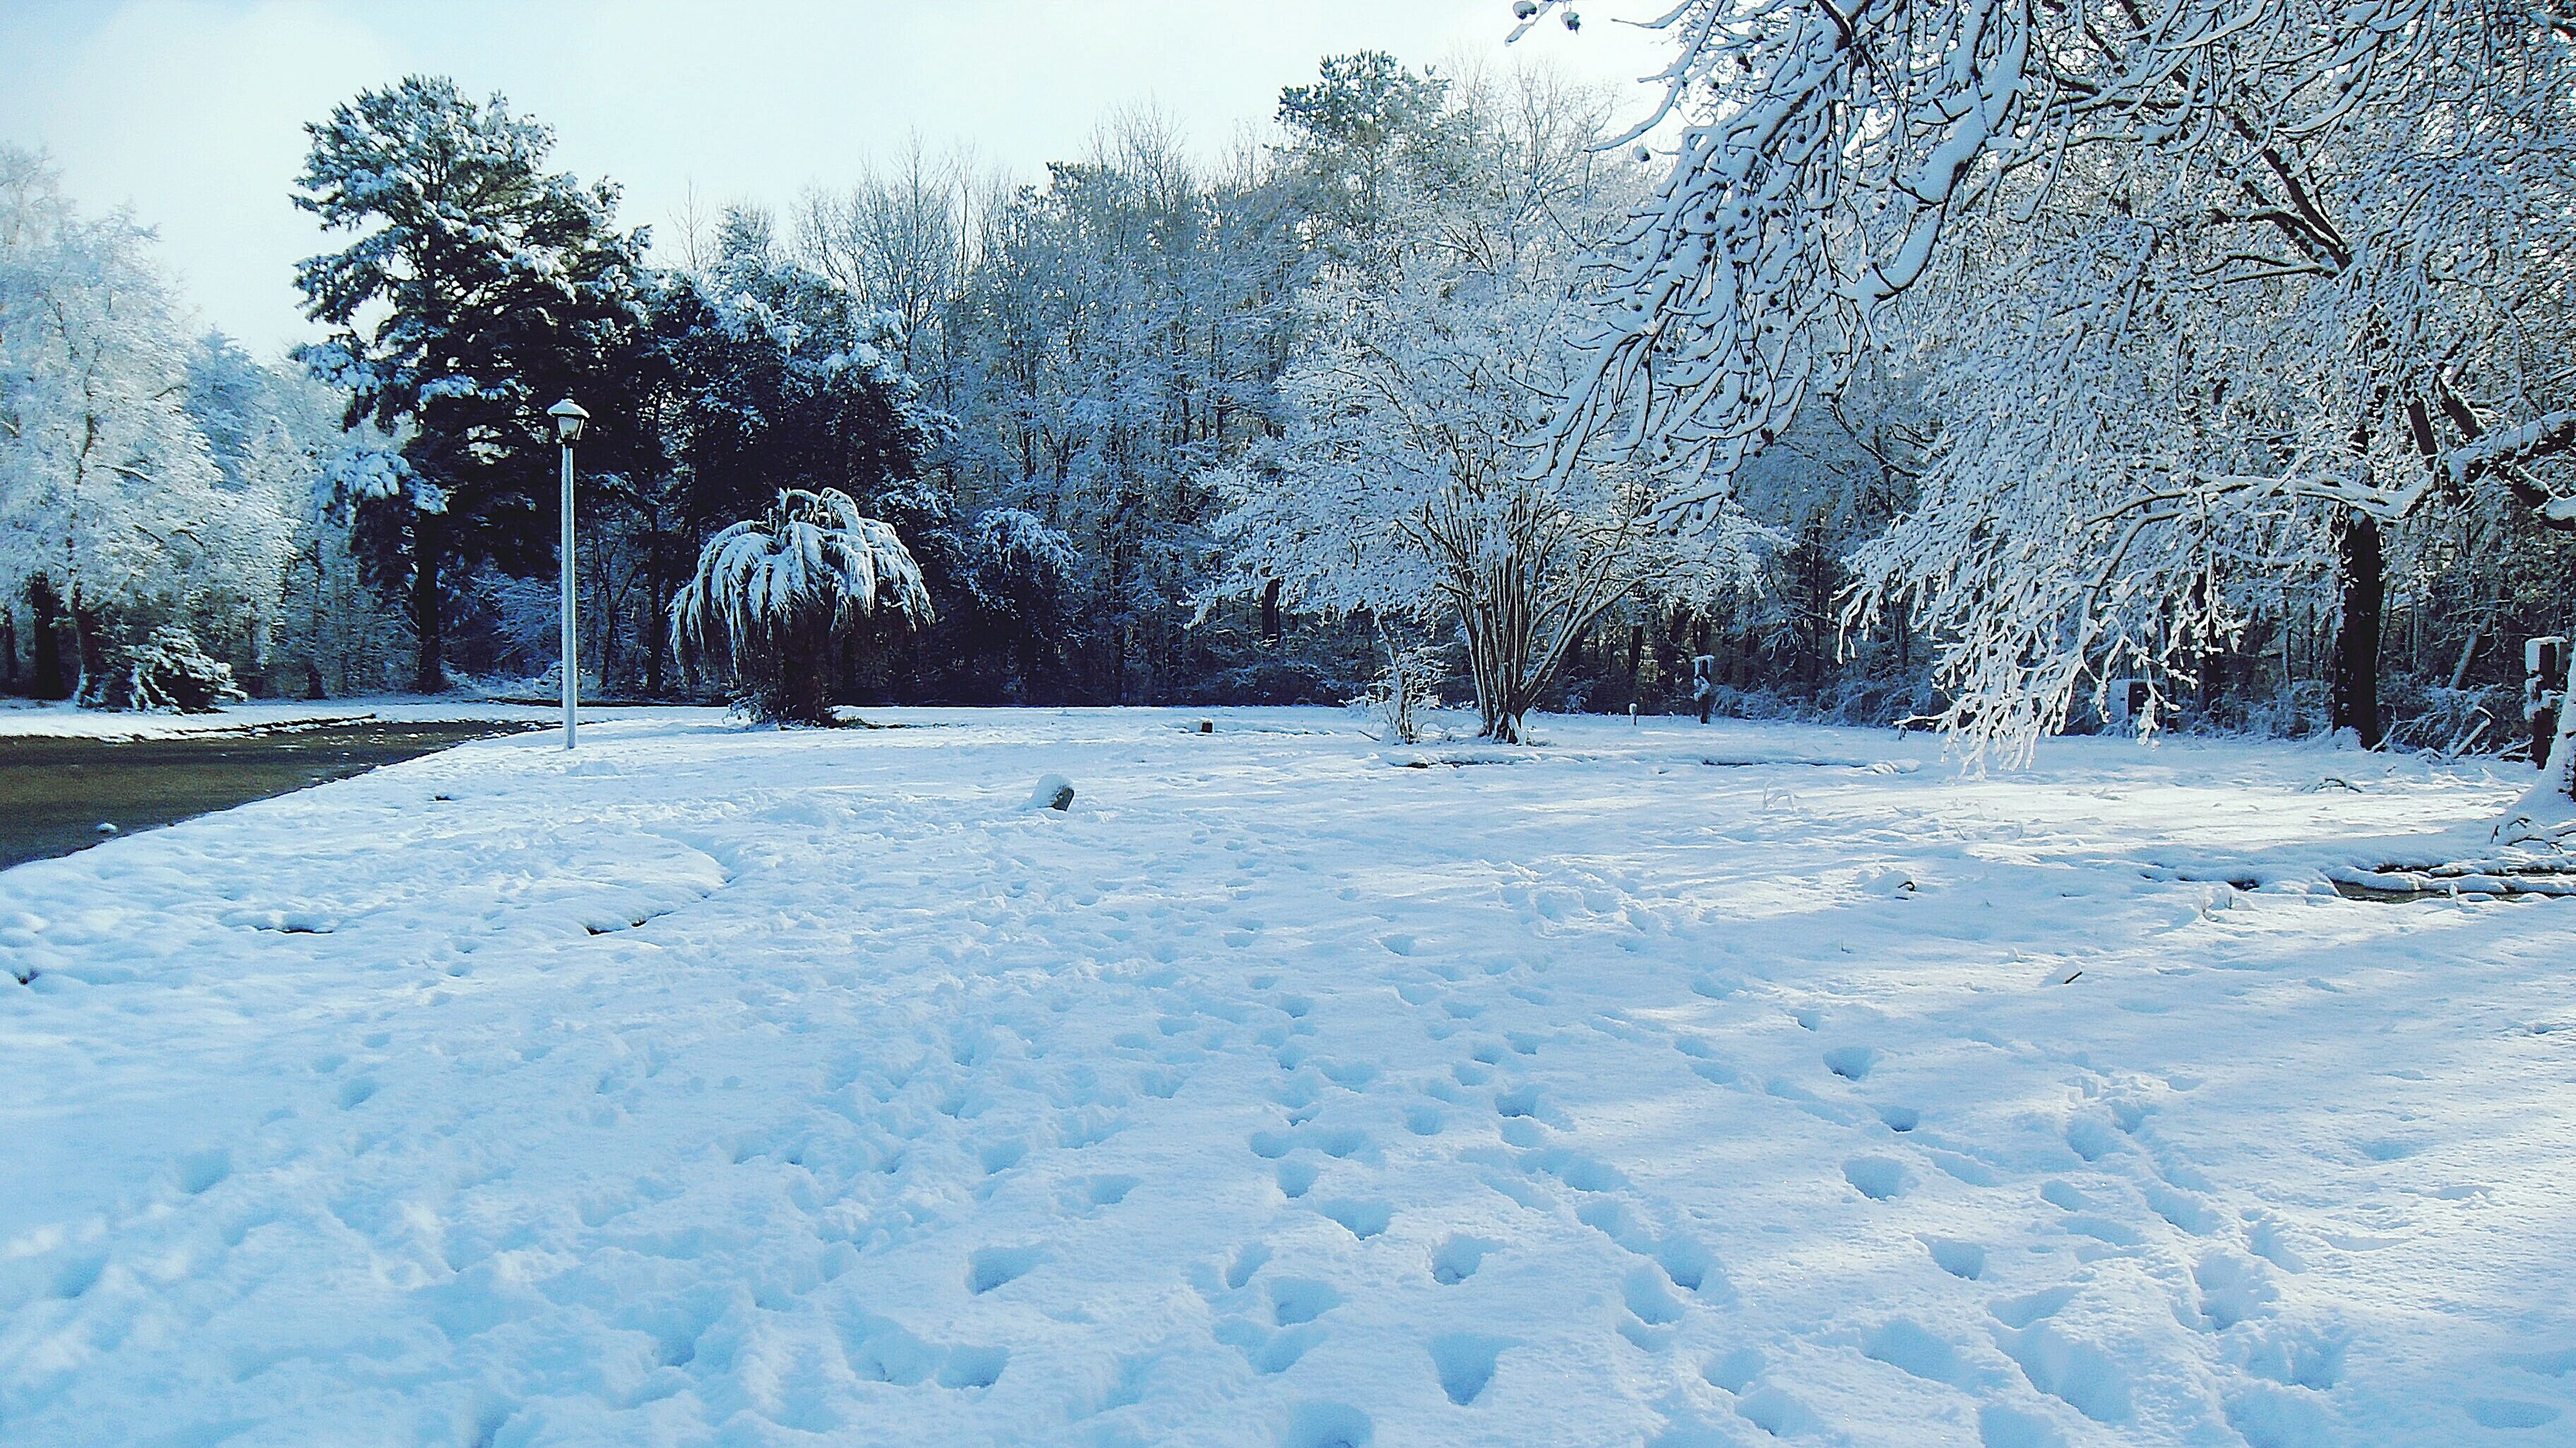 snow, winter, cold temperature, season, weather, tree, covering, frozen, white color, nature, tranquility, tranquil scene, field, beauty in nature, landscape, covered, bare tree, snow covered, white, scenics